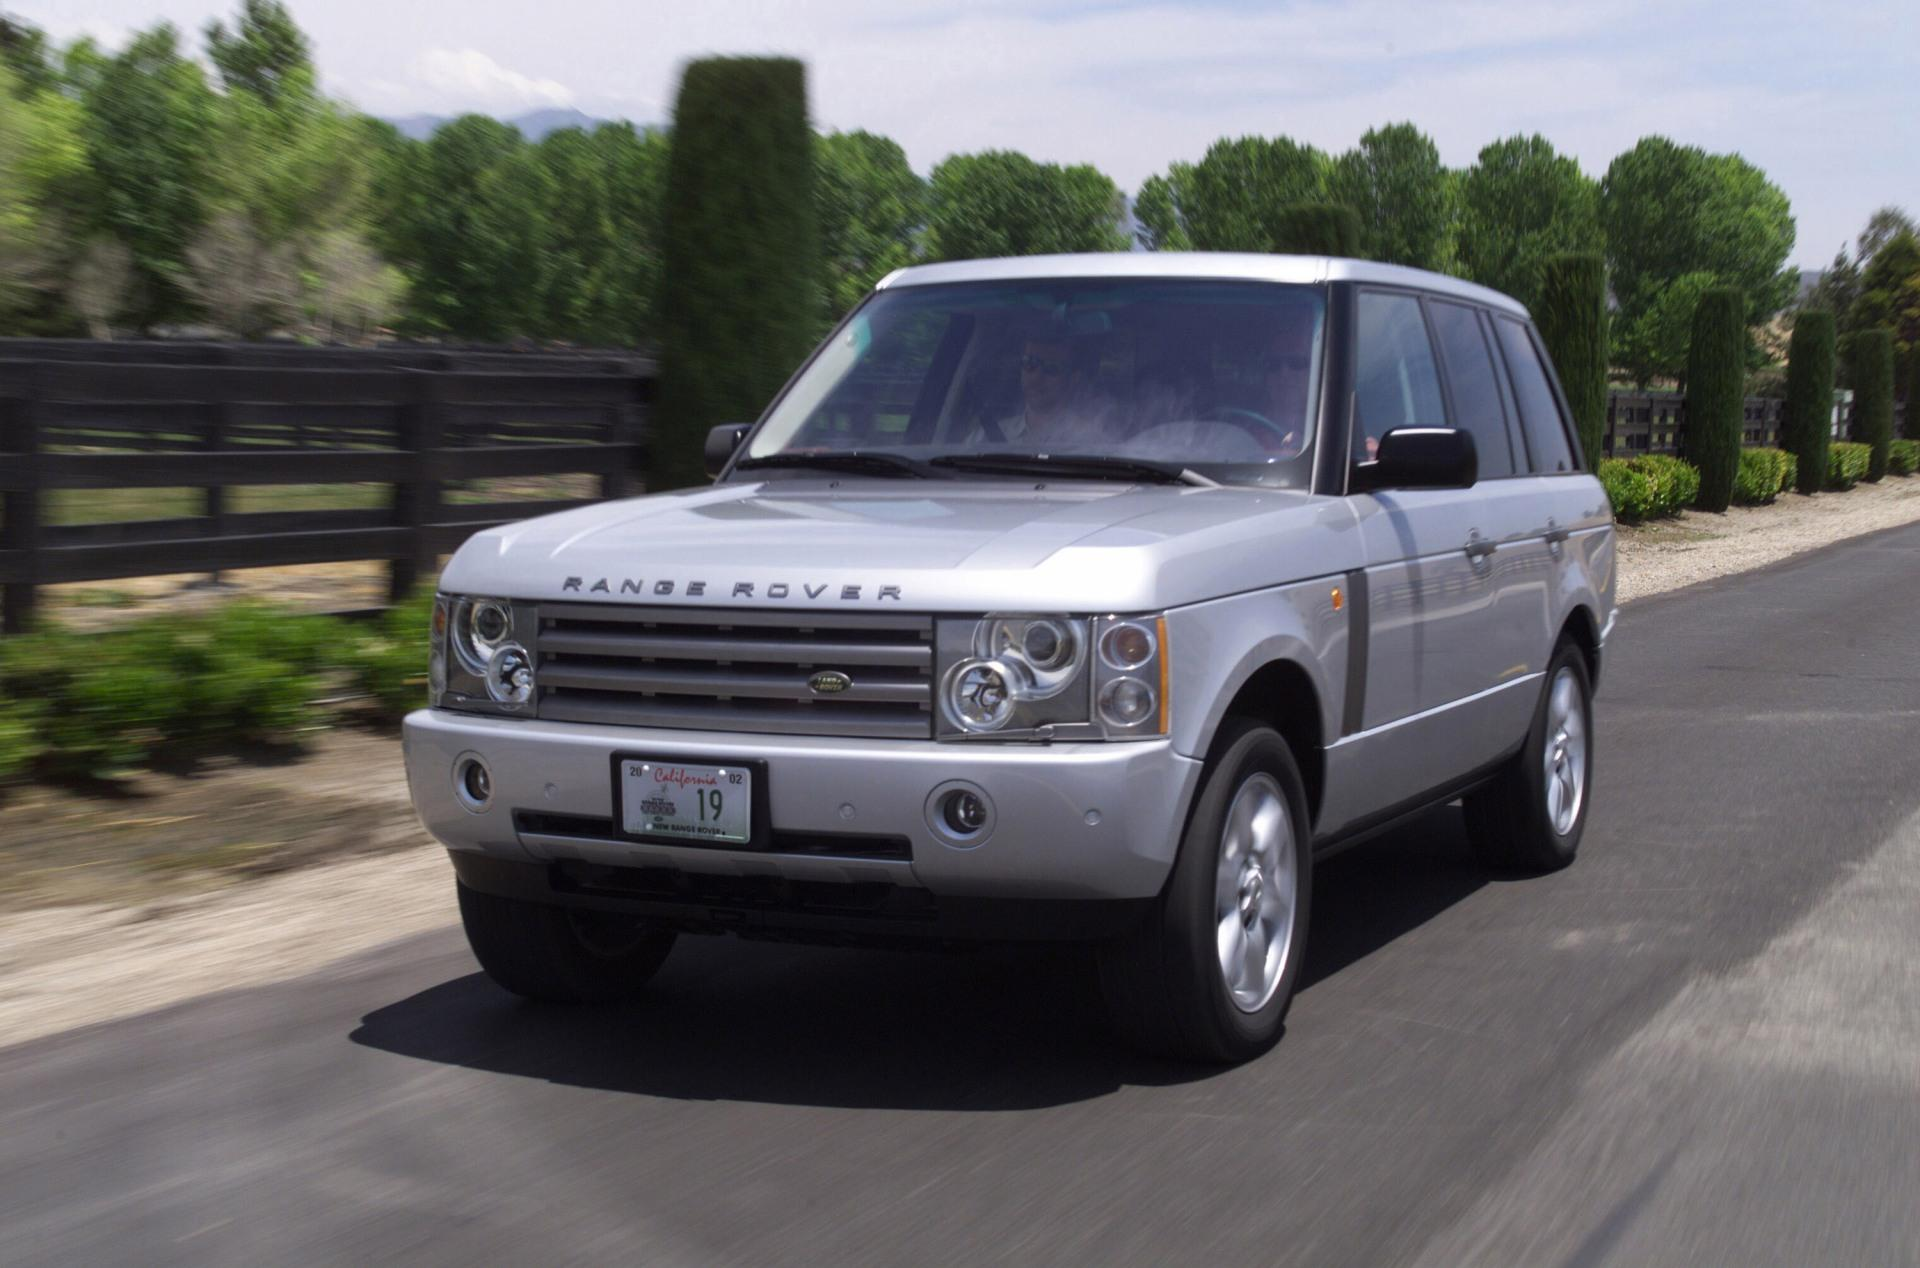 2009 Land Rover Range Rover News and Information